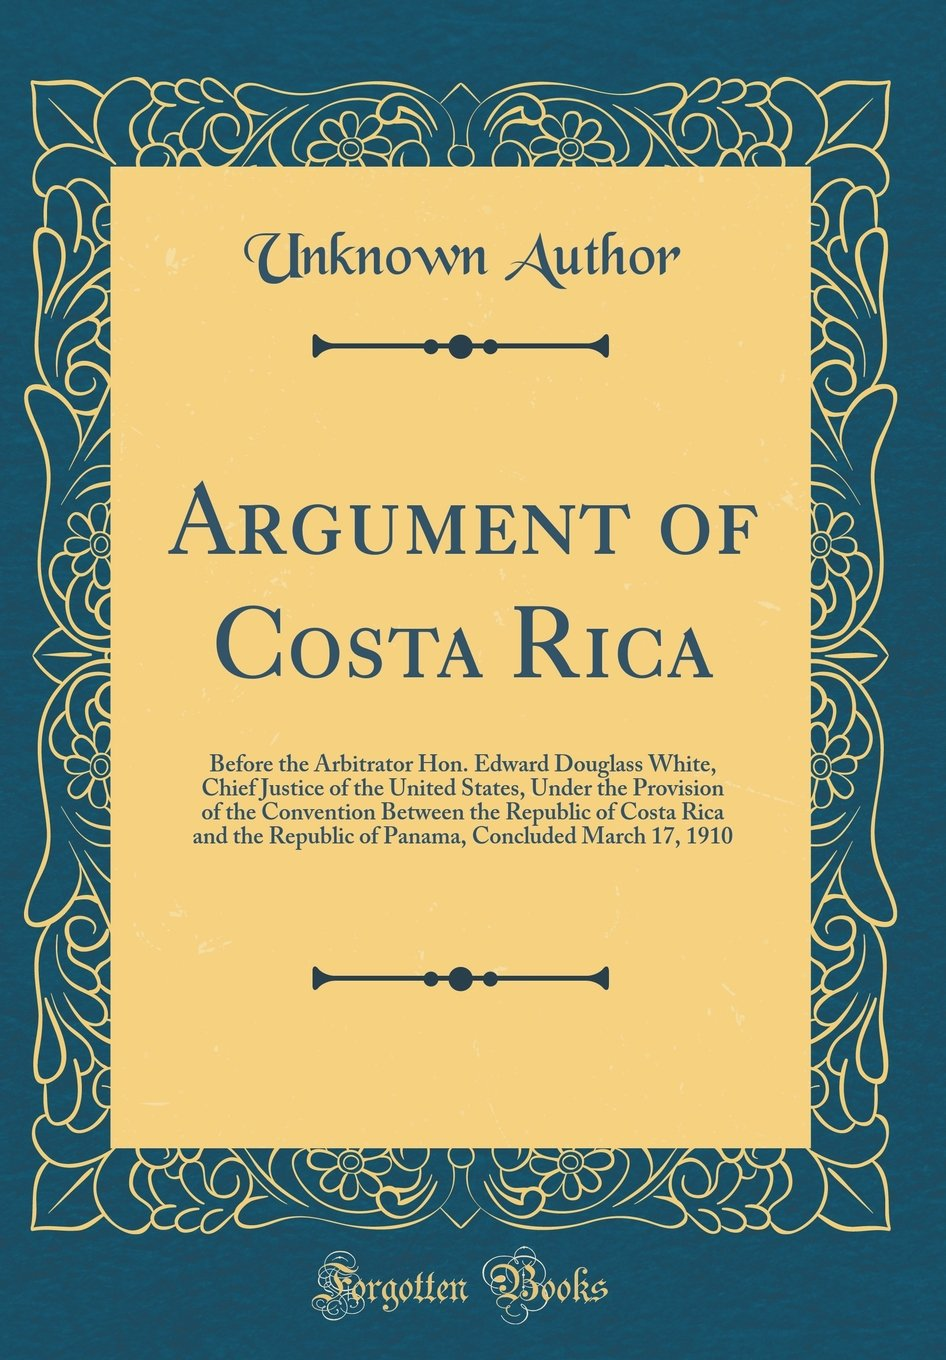 Download Argument of Costa Rica: Before the Arbitrator Hon. Edward Douglass White, Chief Justice of the United States, Under the Provision of the Convention ... Concluded March 17, 1910 (Classic Reprint) pdf epub